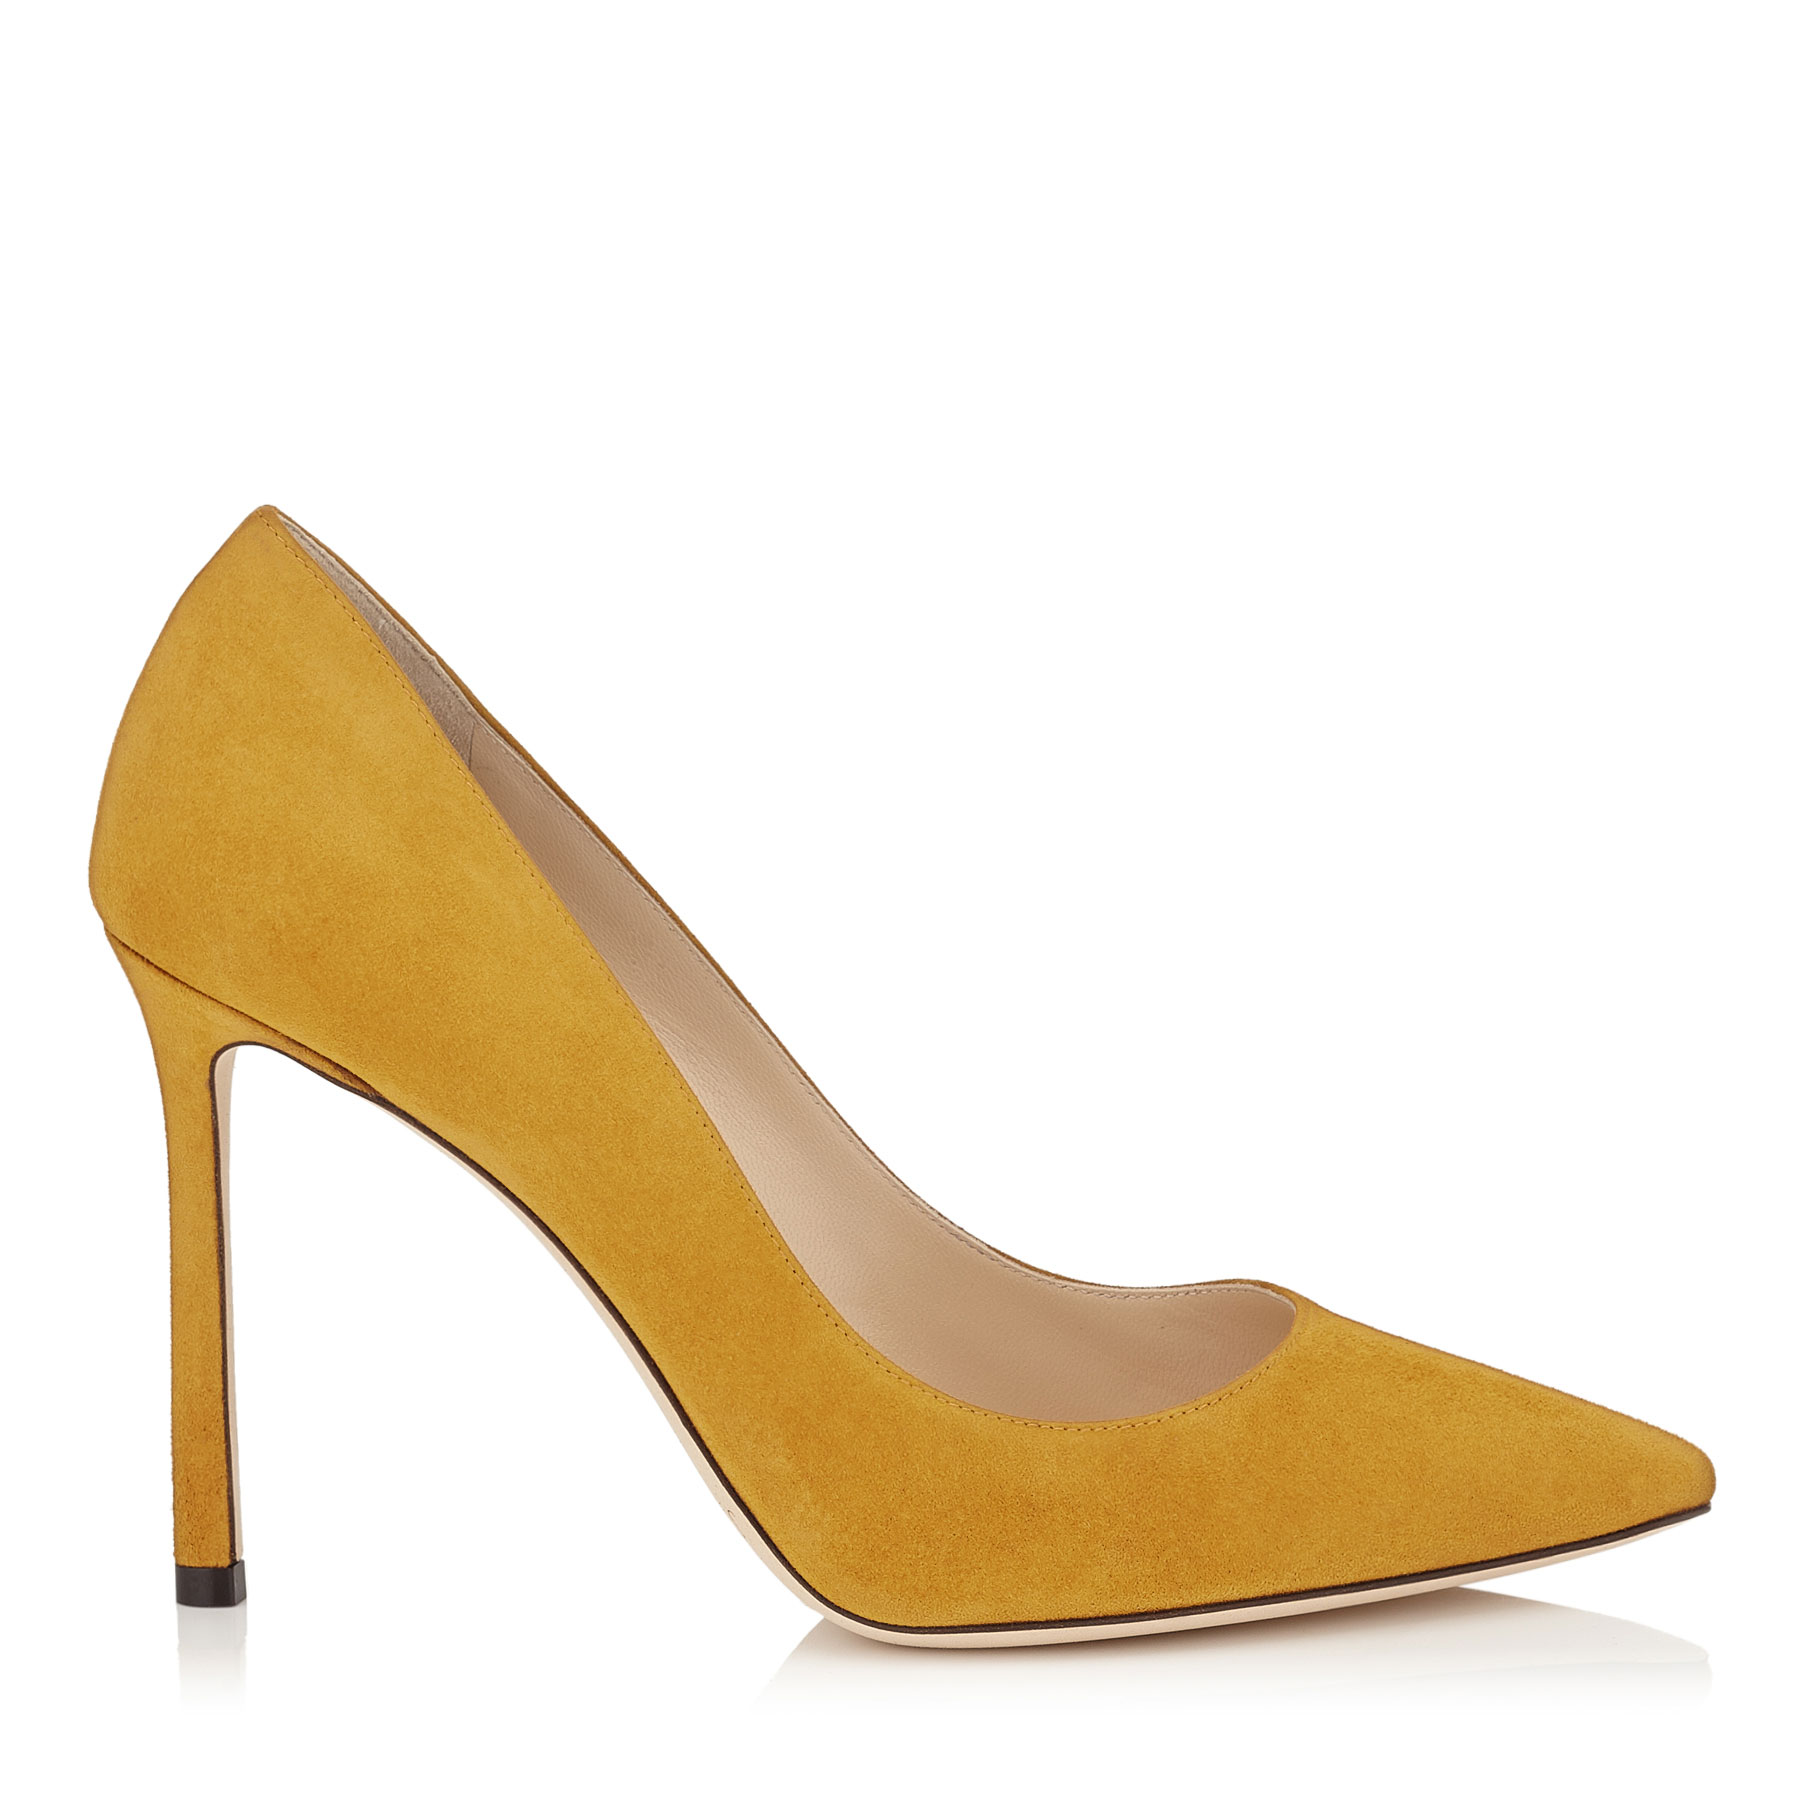 ROMY 100 Amber Suede Pointy Toe Pumps